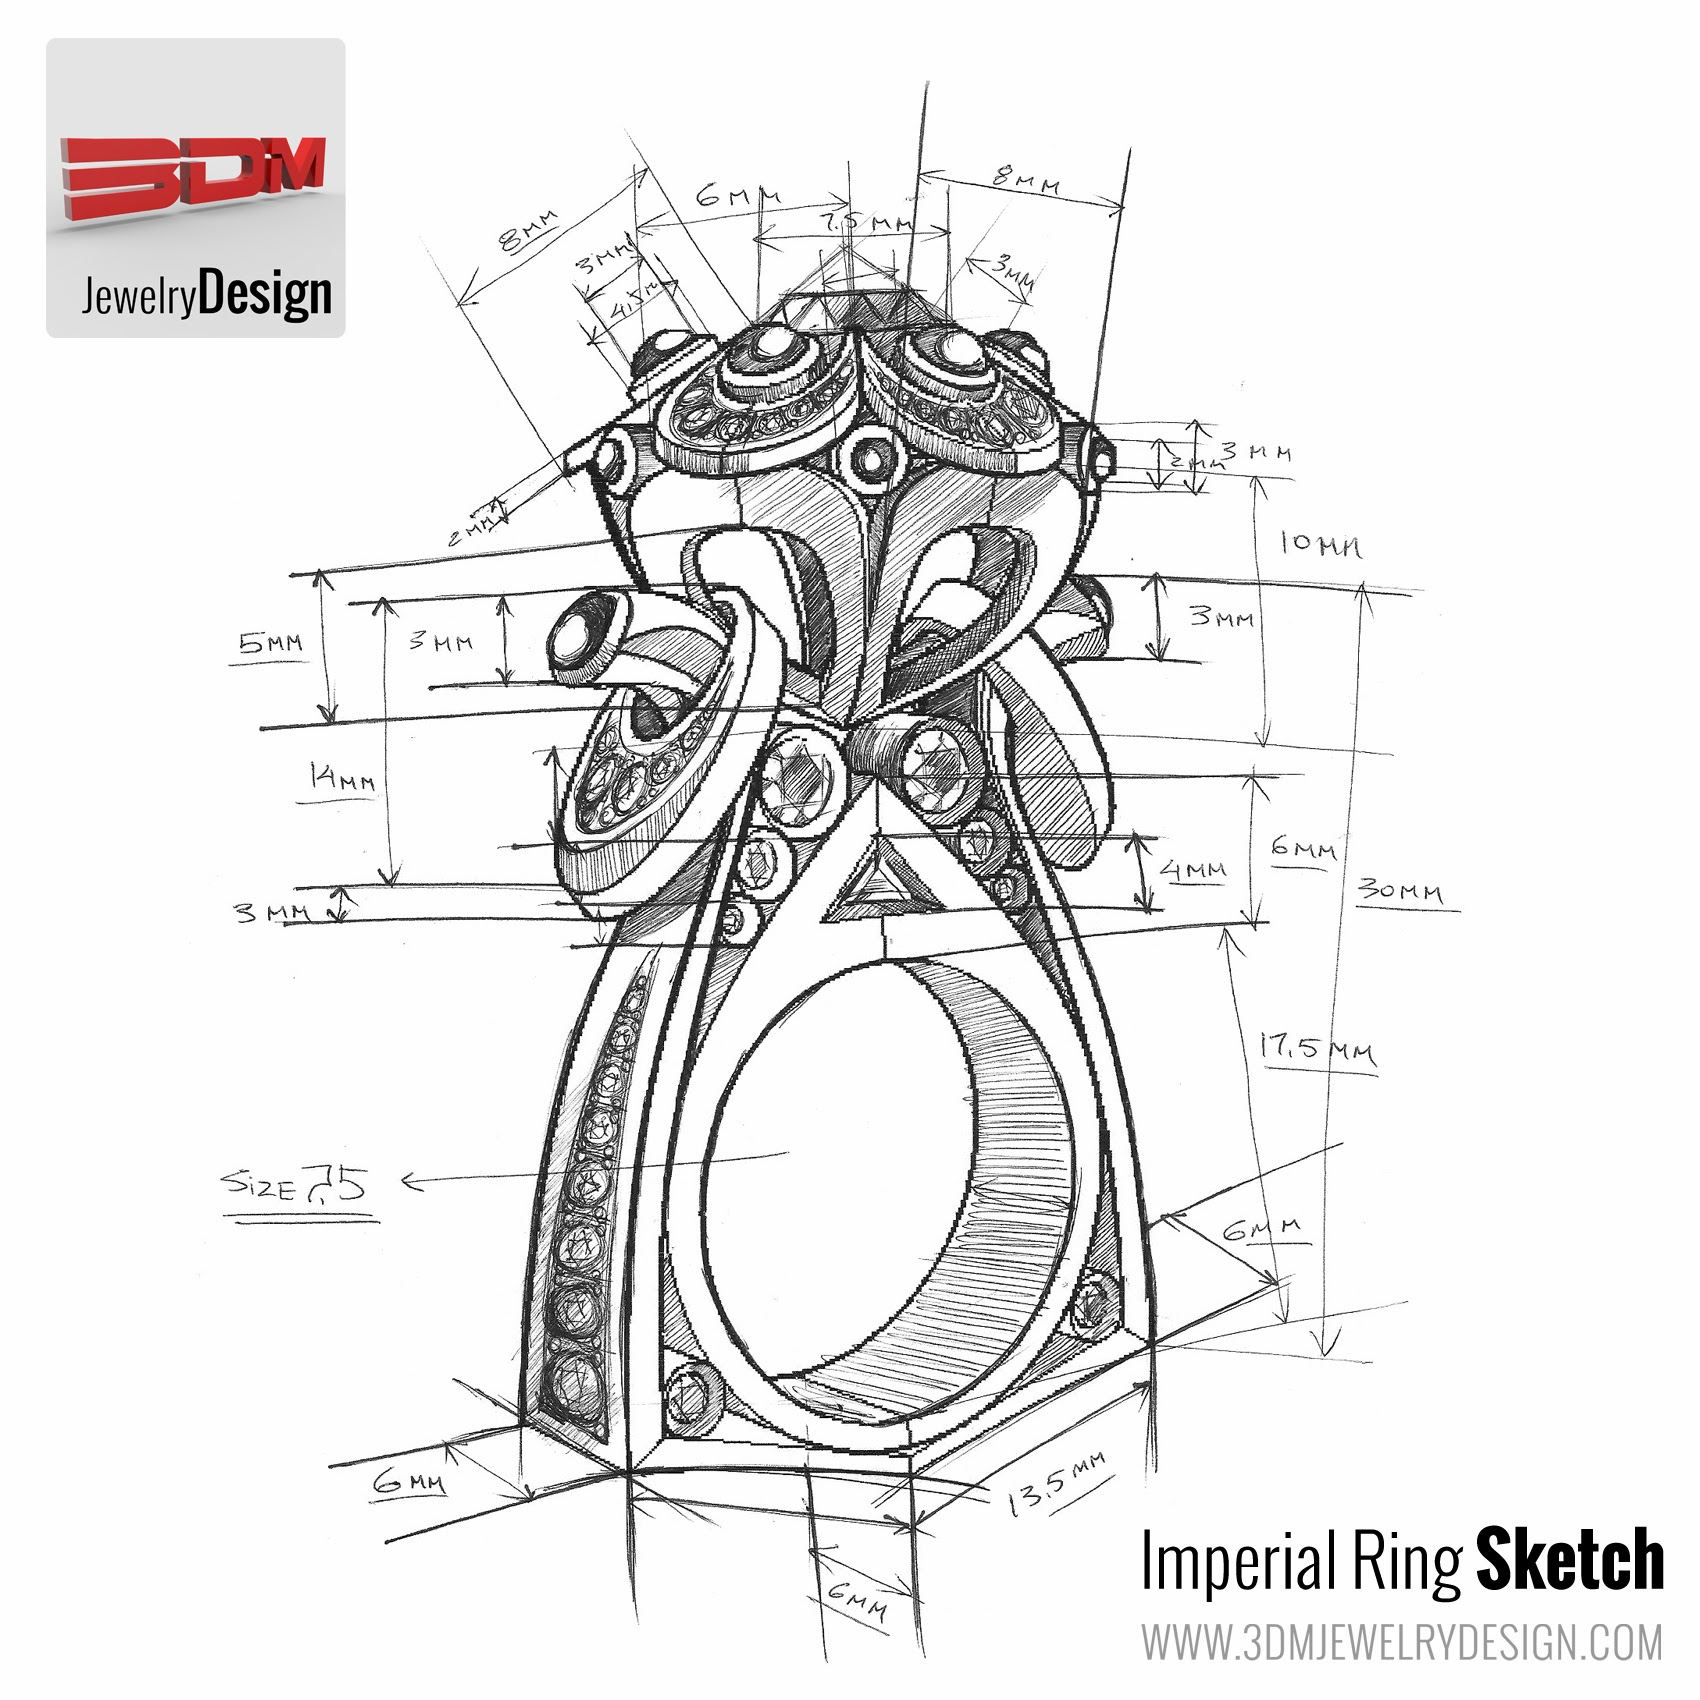 Jewelry Design Drawing